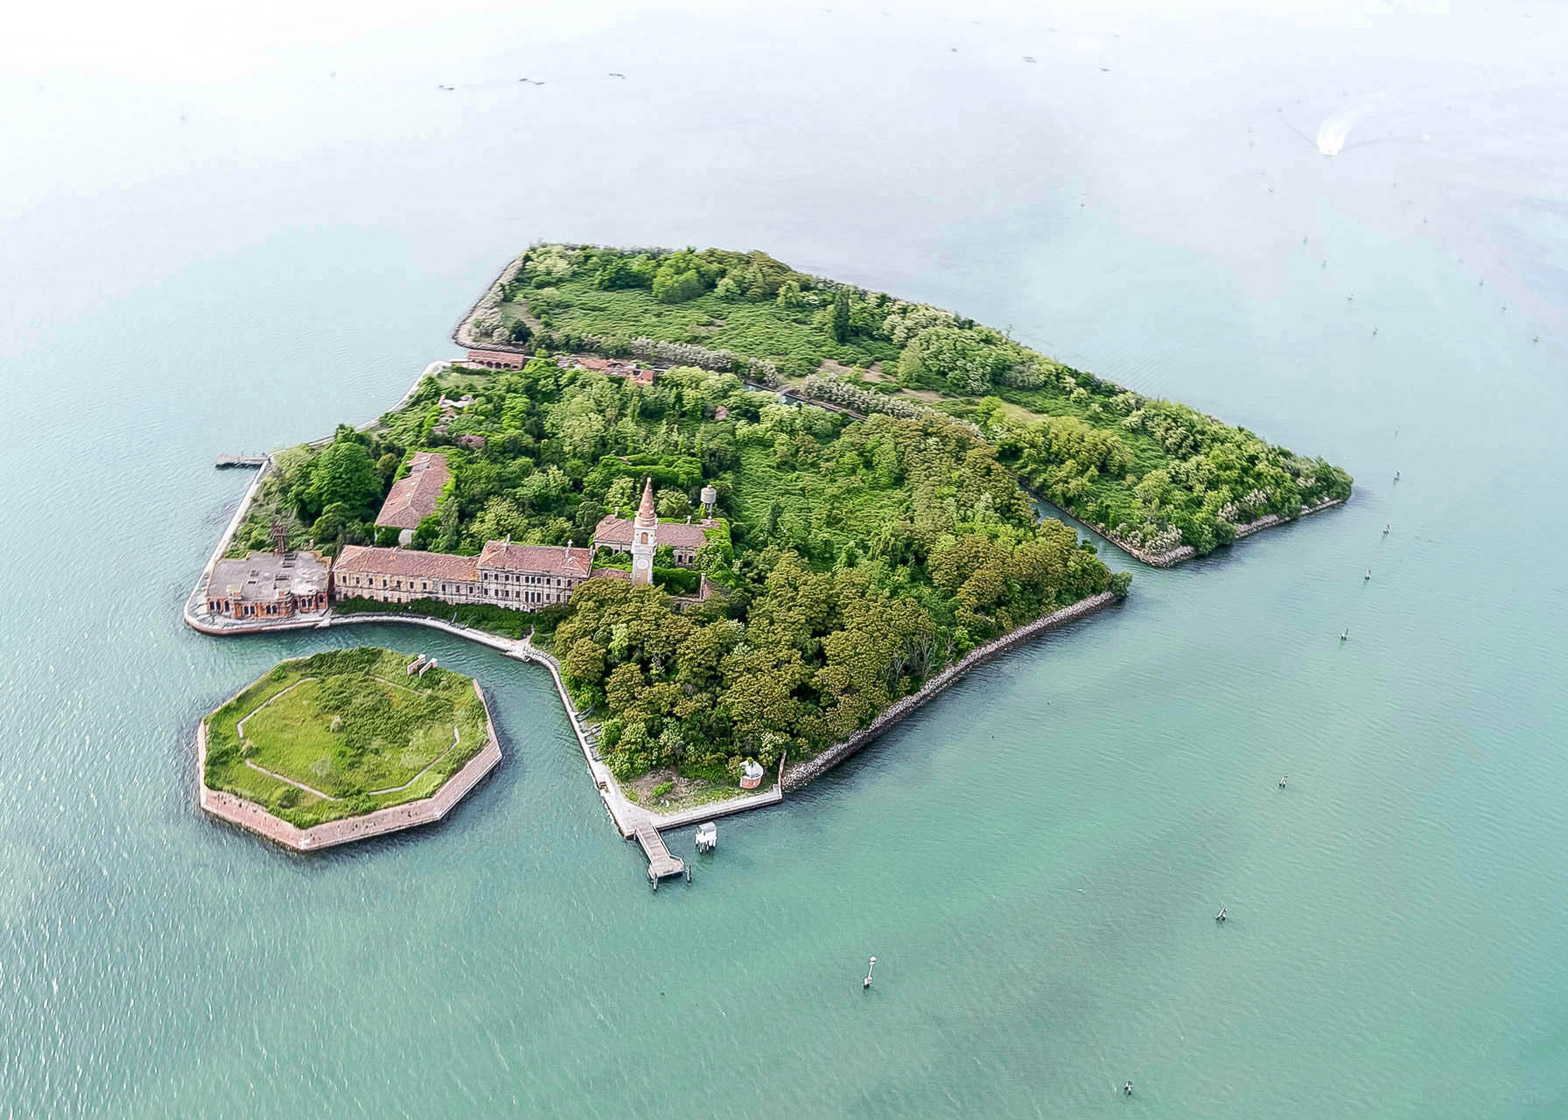 The University Island competition aims to transform the abandoned Poveglia Island